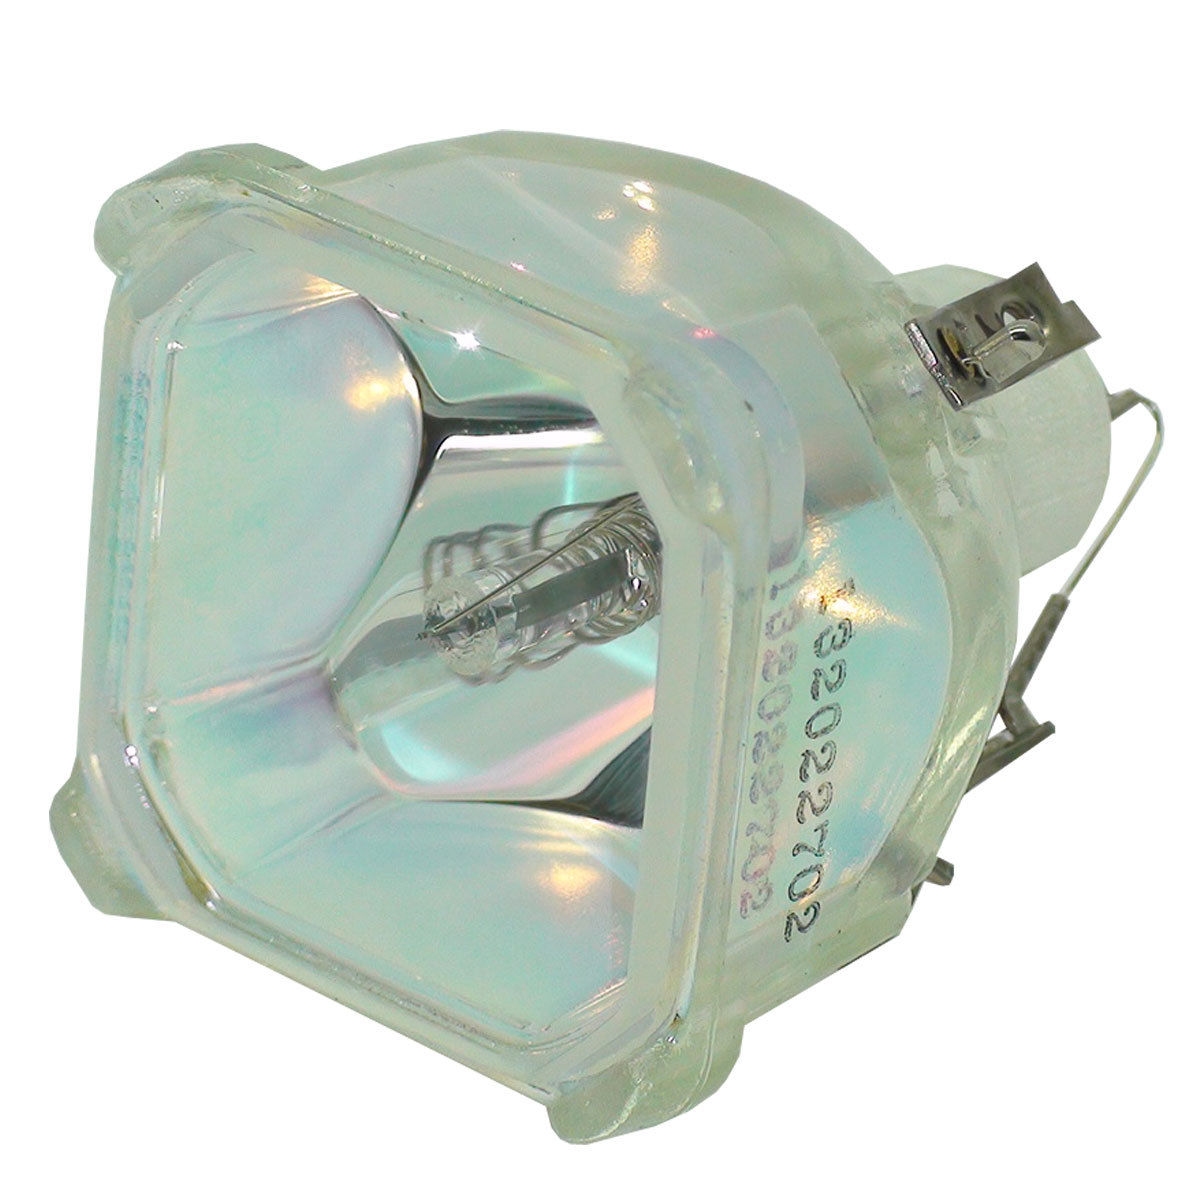 где купить Compatible Bare Bulb EP7750LK 78-6969-9565-9 for 3M MP7740i MP7740iA X40 X40i Projector Lamp Bulbs without housing дешево